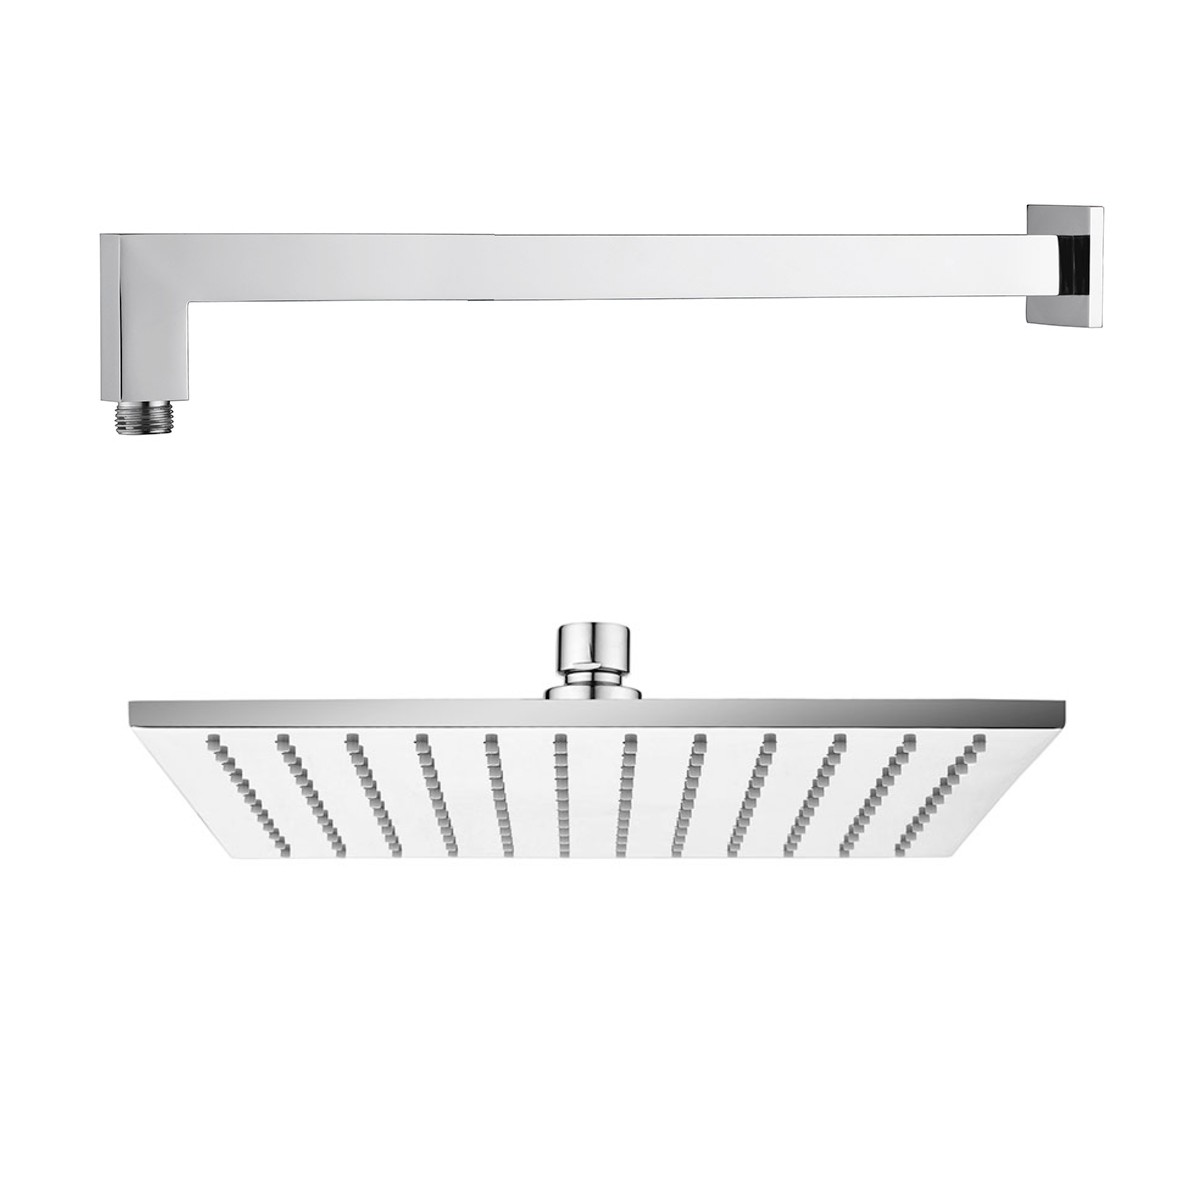 Wall Arm & Shower Head Square